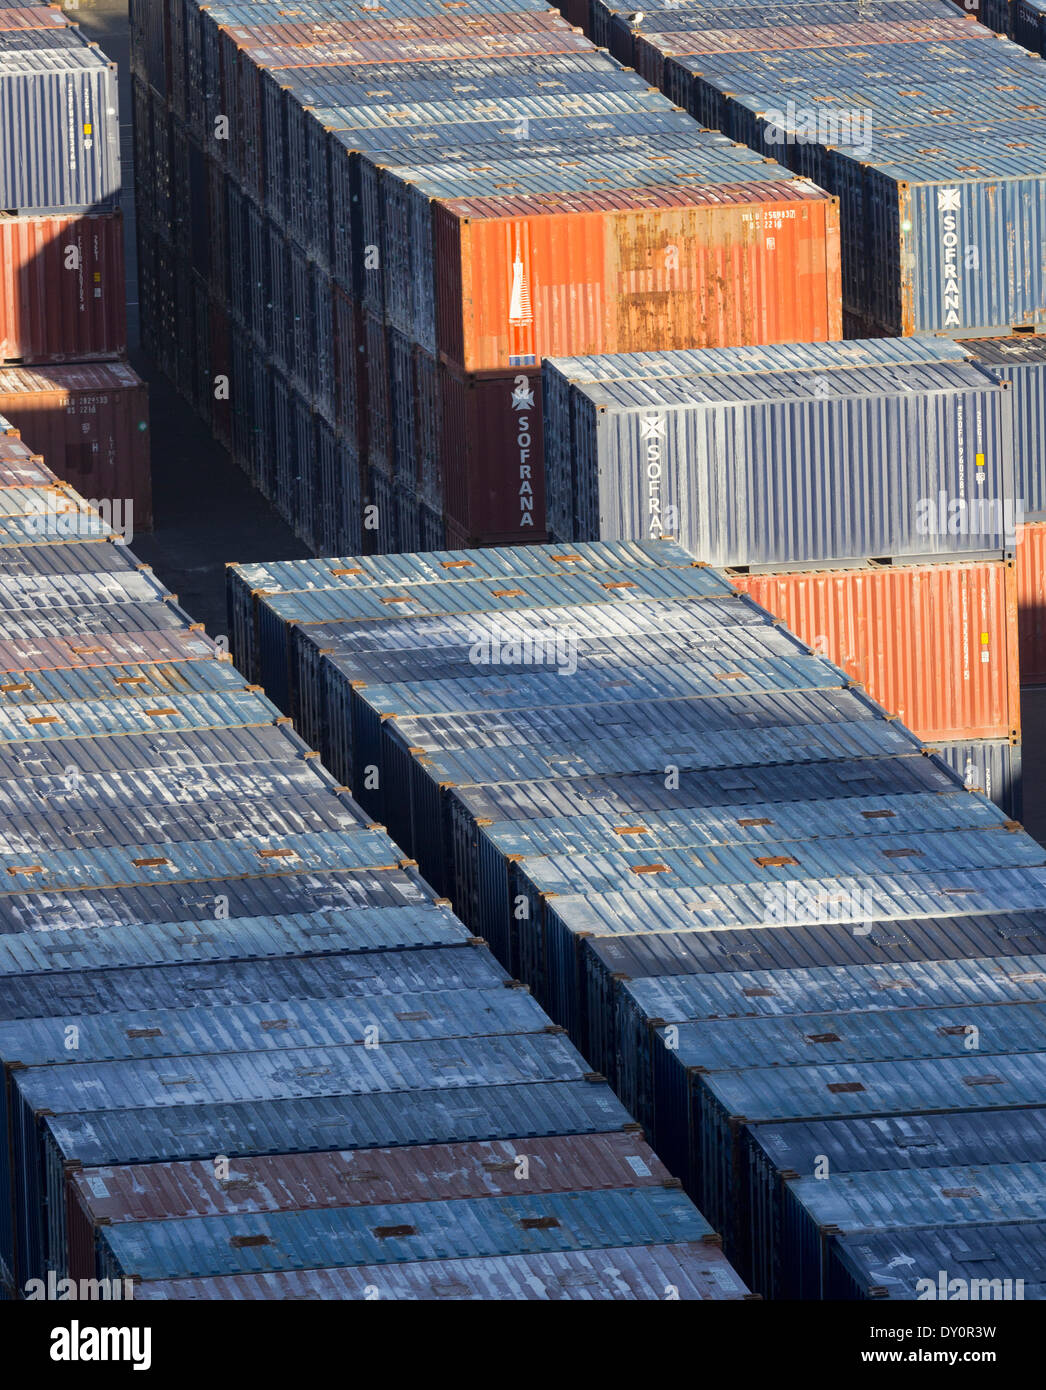 Stacks of industrial shipping containers at a port - Stock Image